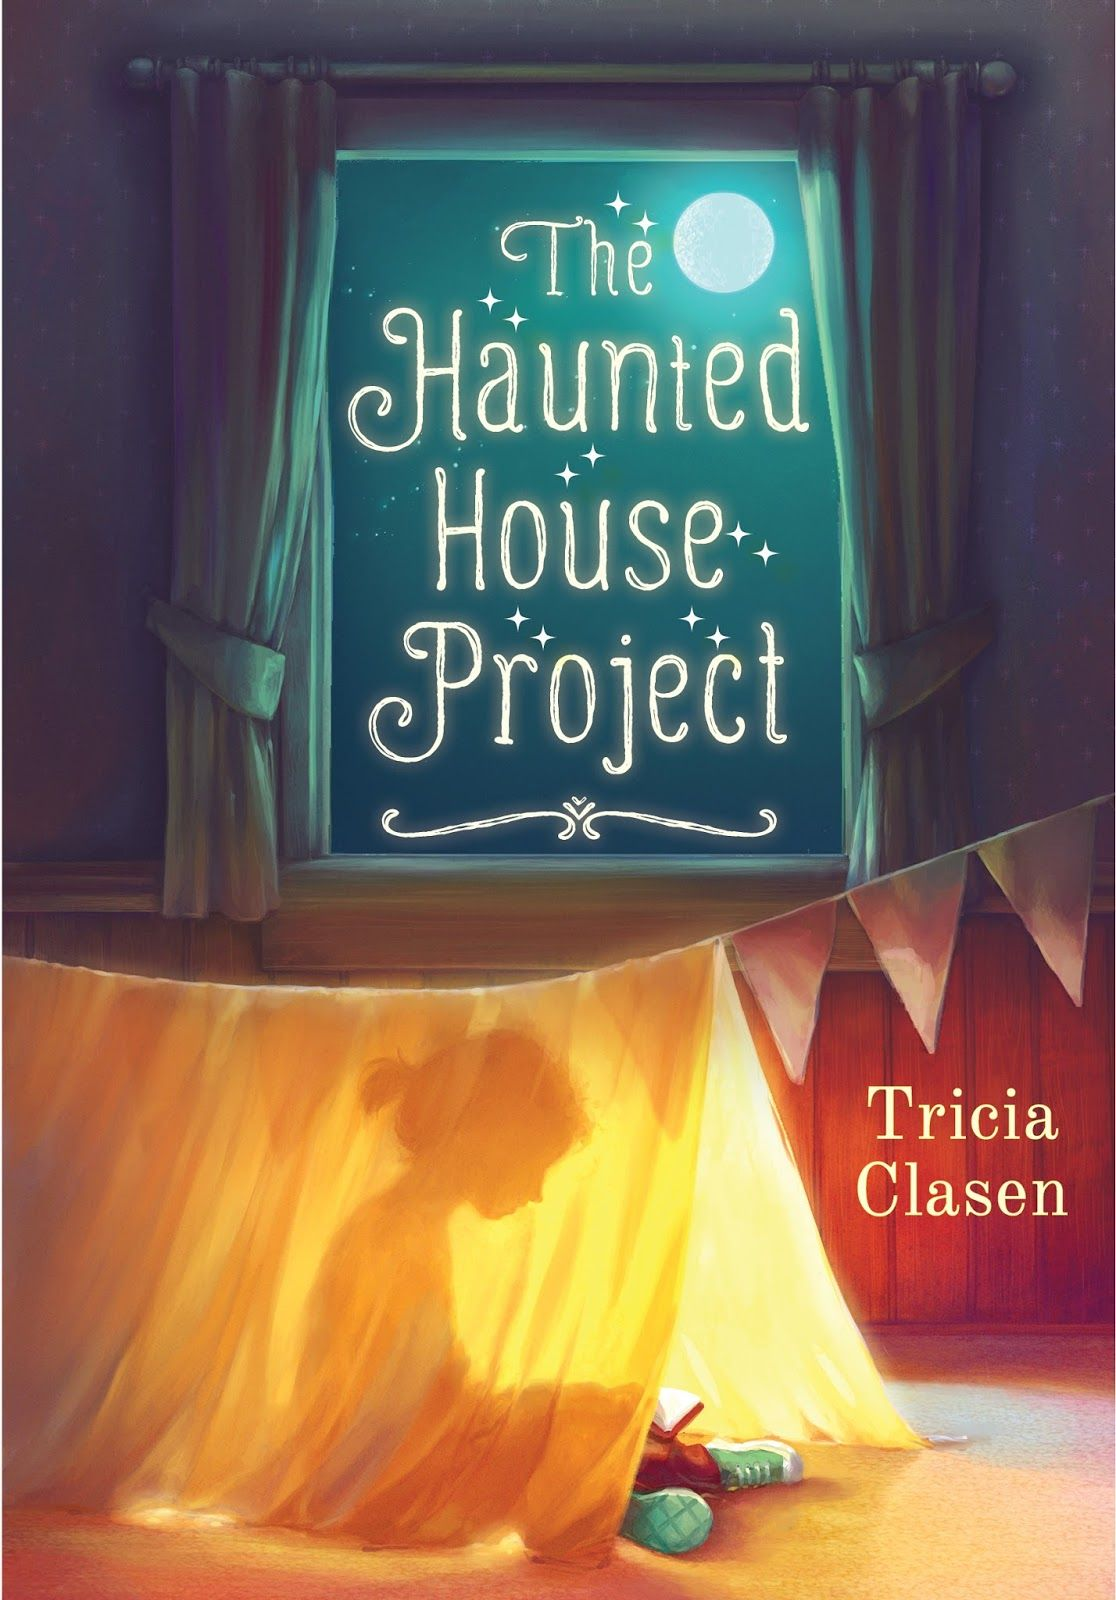 The Haunted House Project by Tricia Clasen   Pretty Books   Pinterest